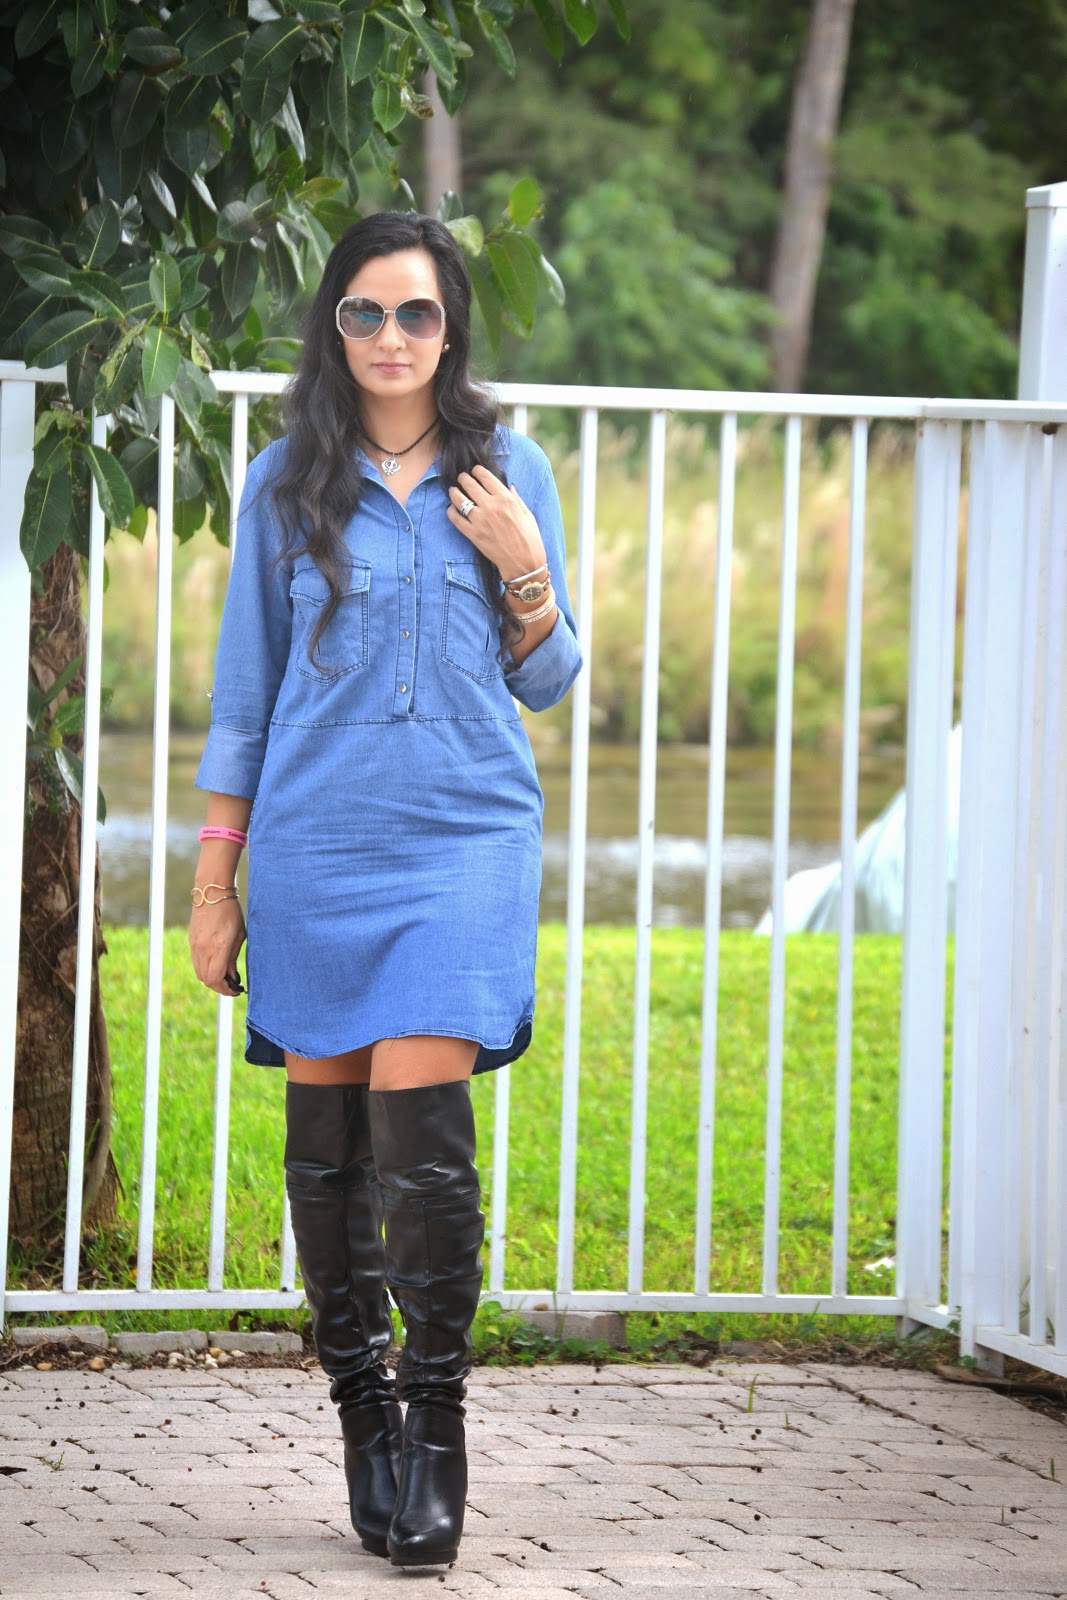 denim dresses denim dresses for women denim shirt dress long denim dress denim dungaree dress www.sandysandhu.co